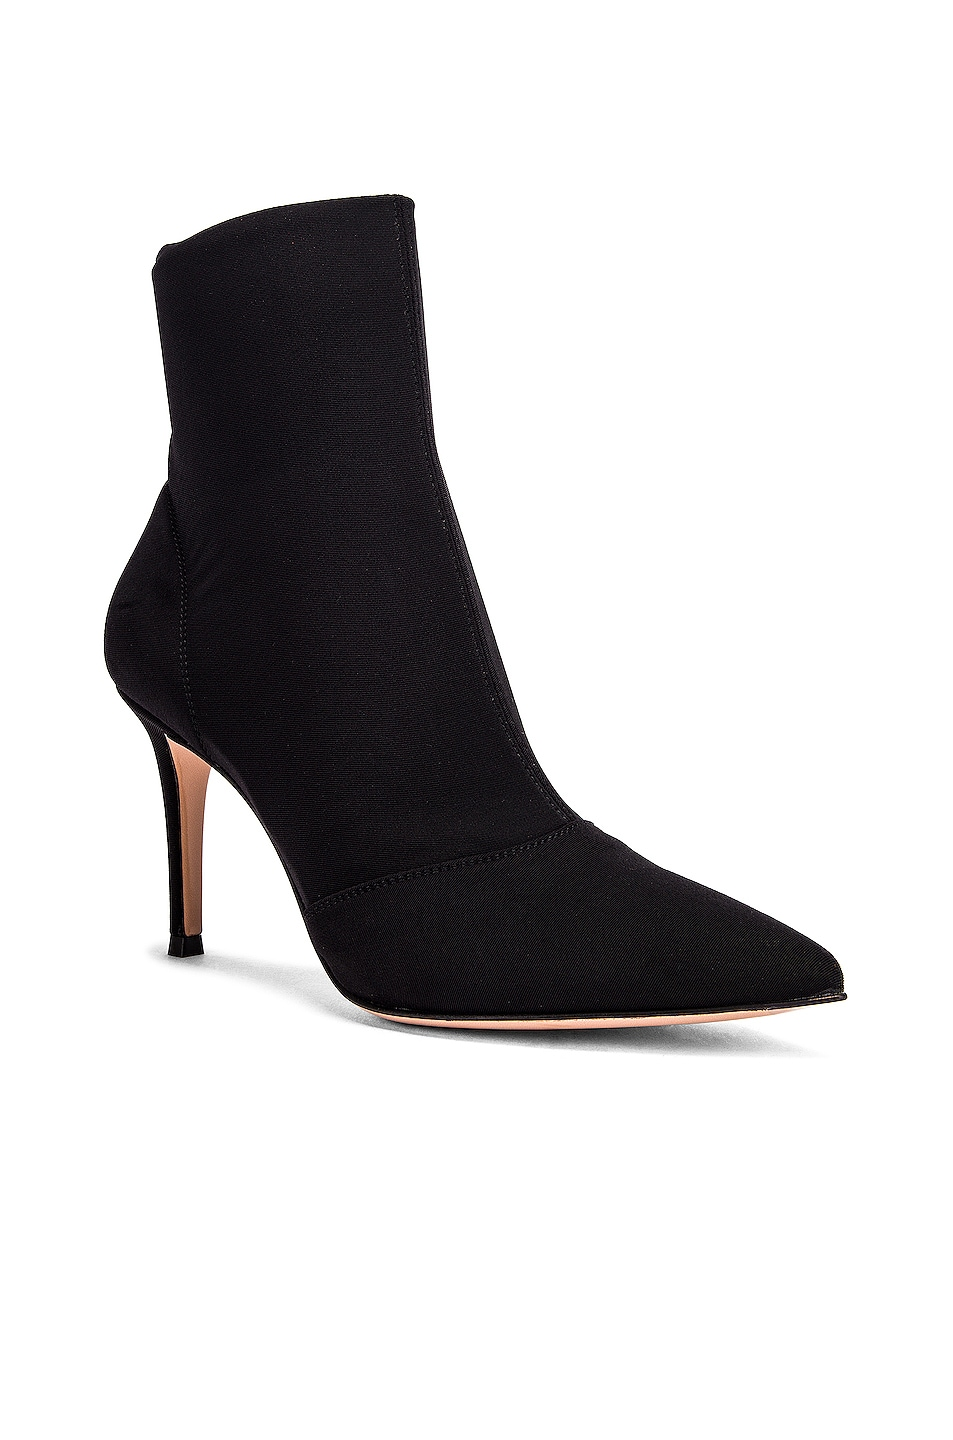 Image 2 of Gianvito Rossi Stretch Ankle Booties in Black